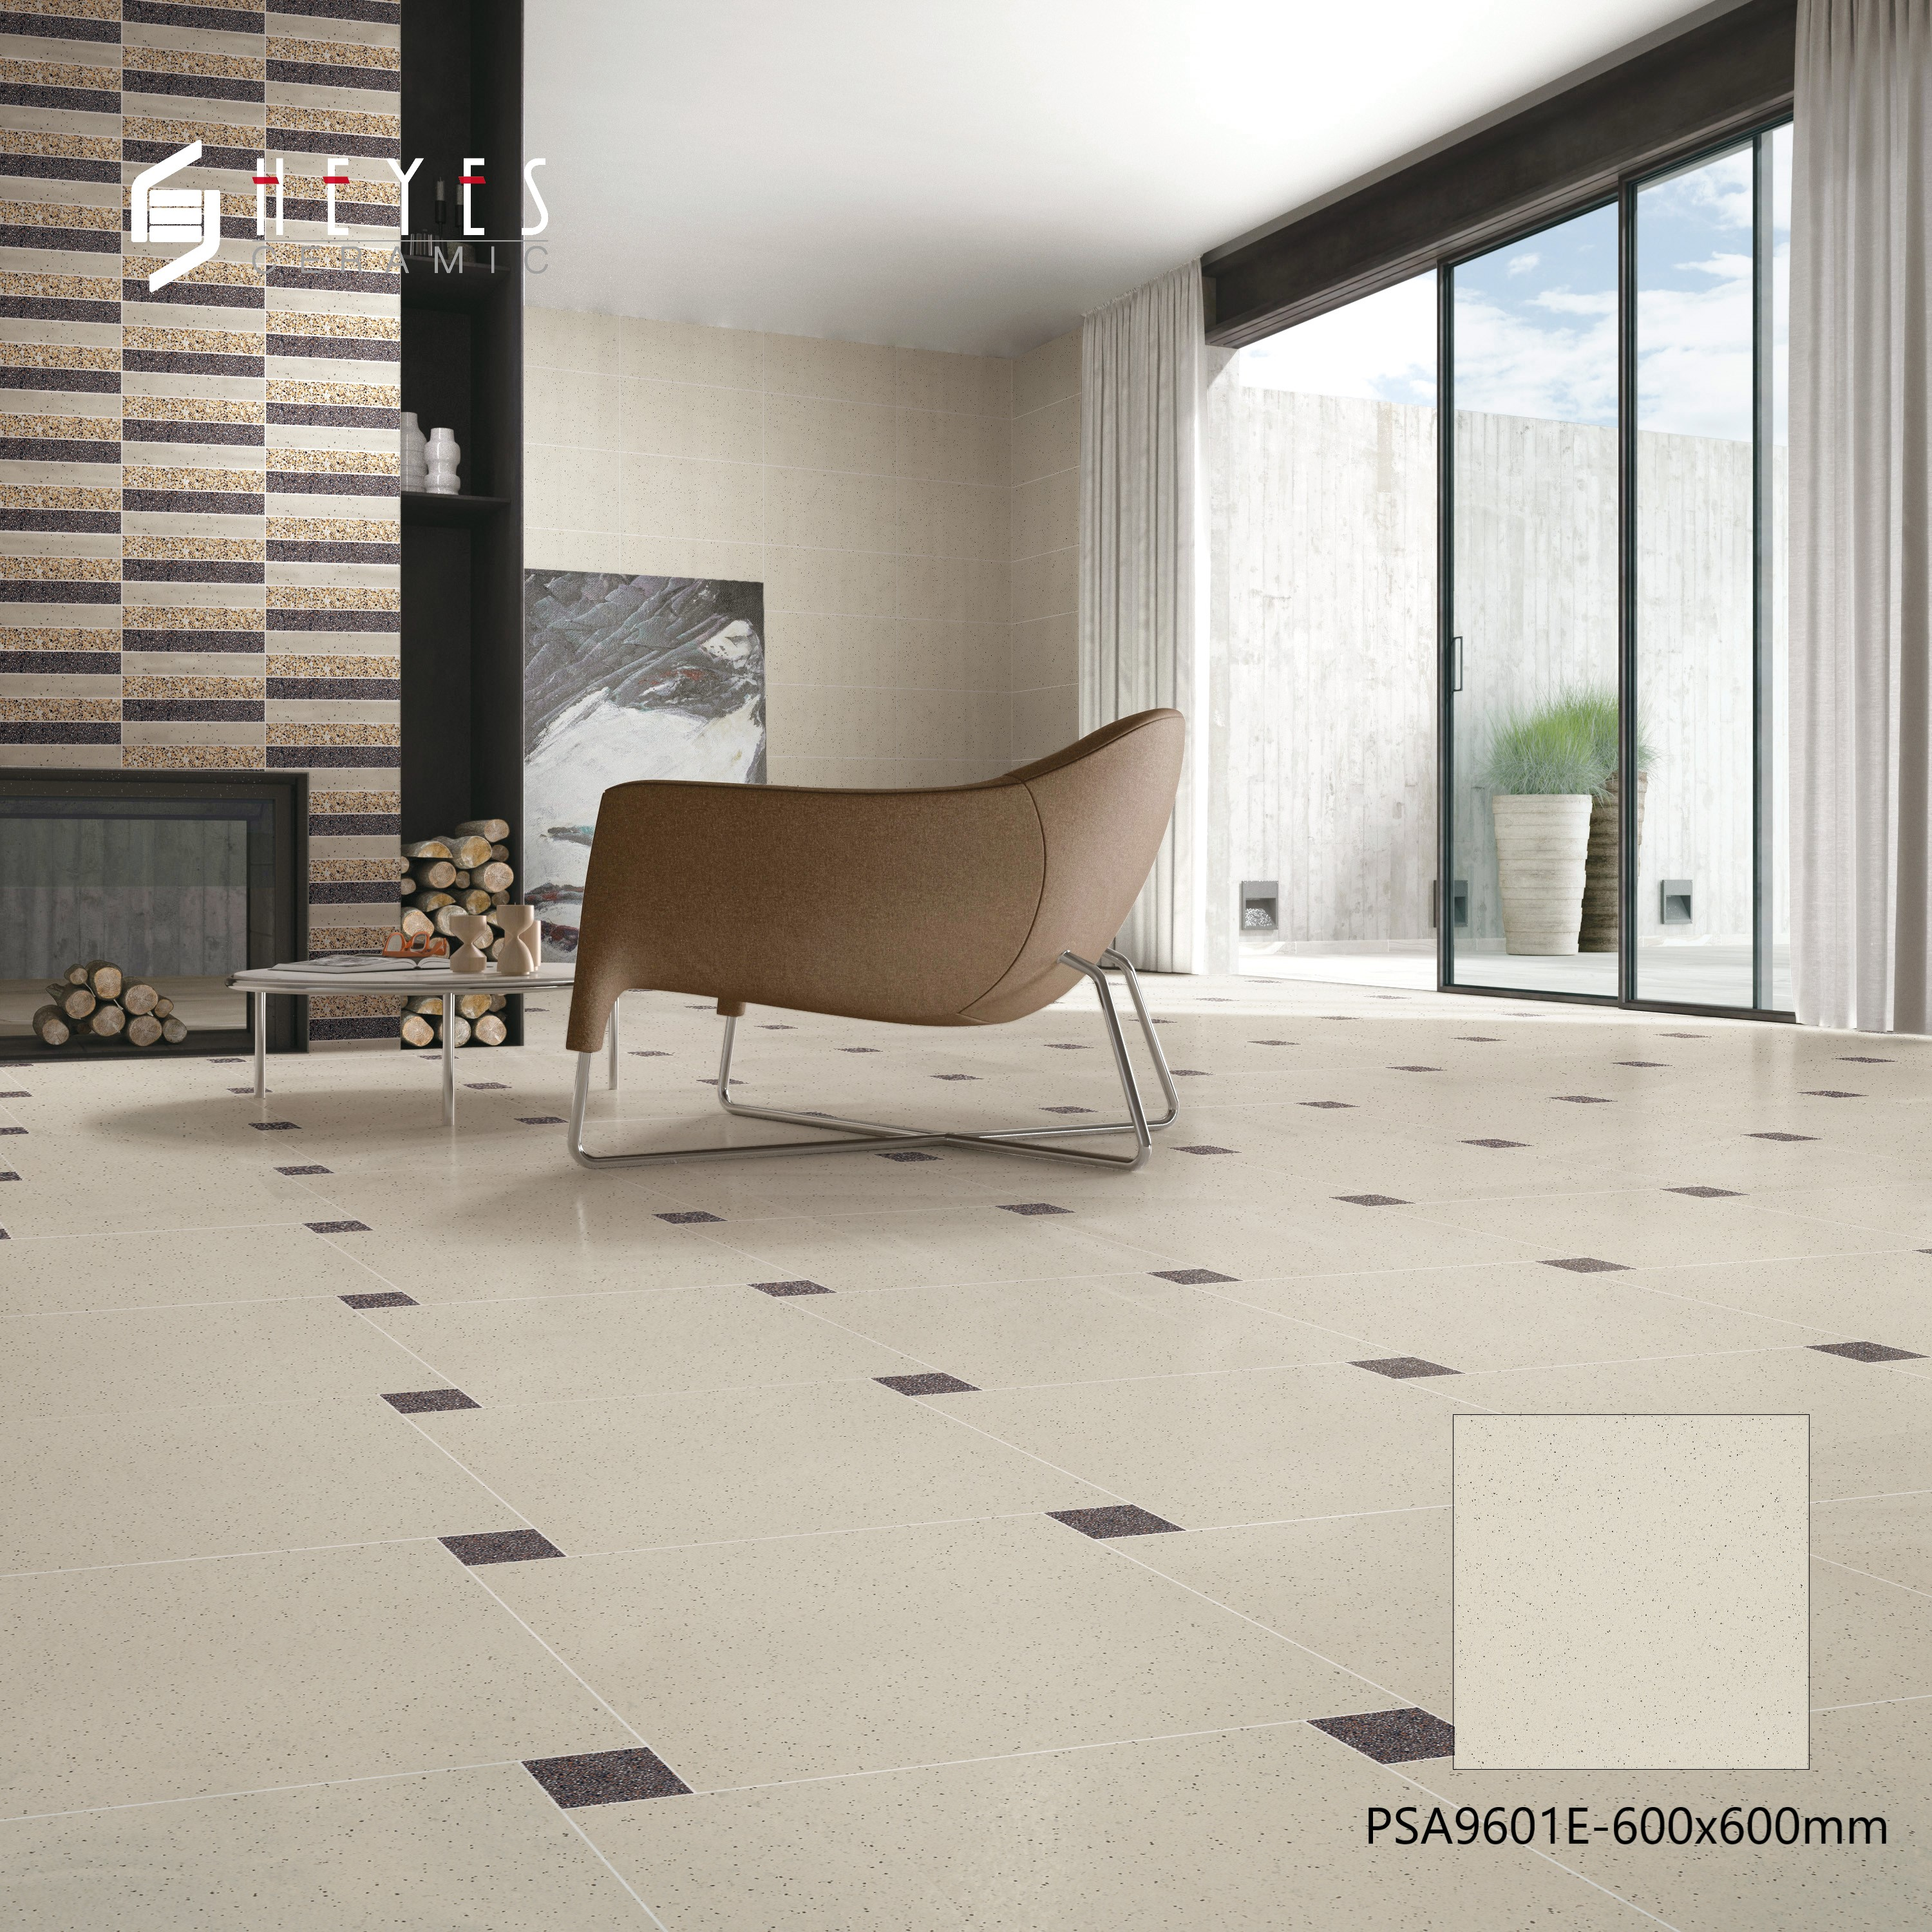 Off White Matte Granite Terrazzo Look Floor Porcelain Wall Tiles Buy Granite Floor Tiles Terrazzo Floor Tiles Porcelain Wall Tiles Product On